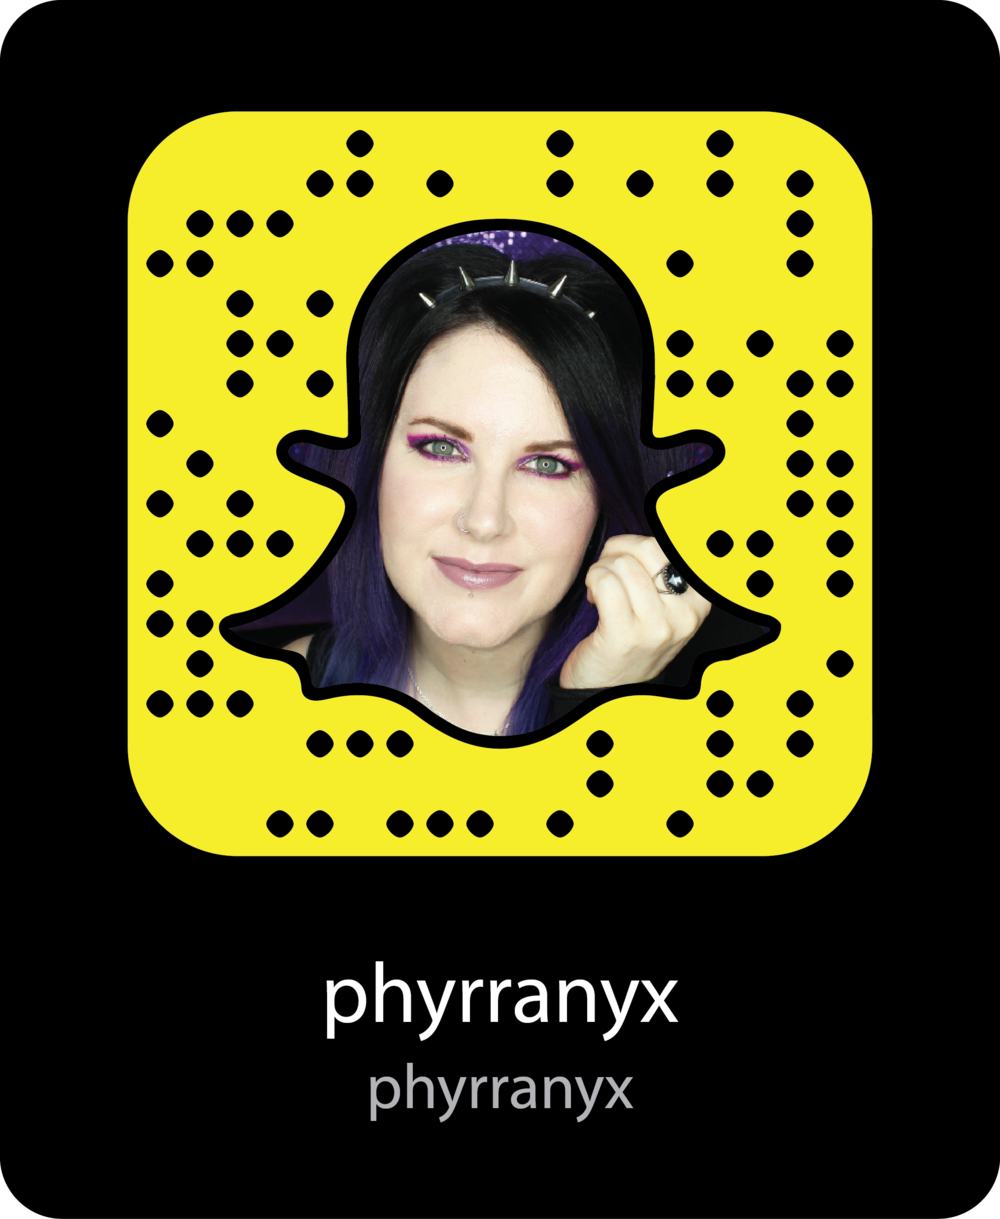 phyrranyx-Beauty-Bloggers-snapchat-snapcode.png